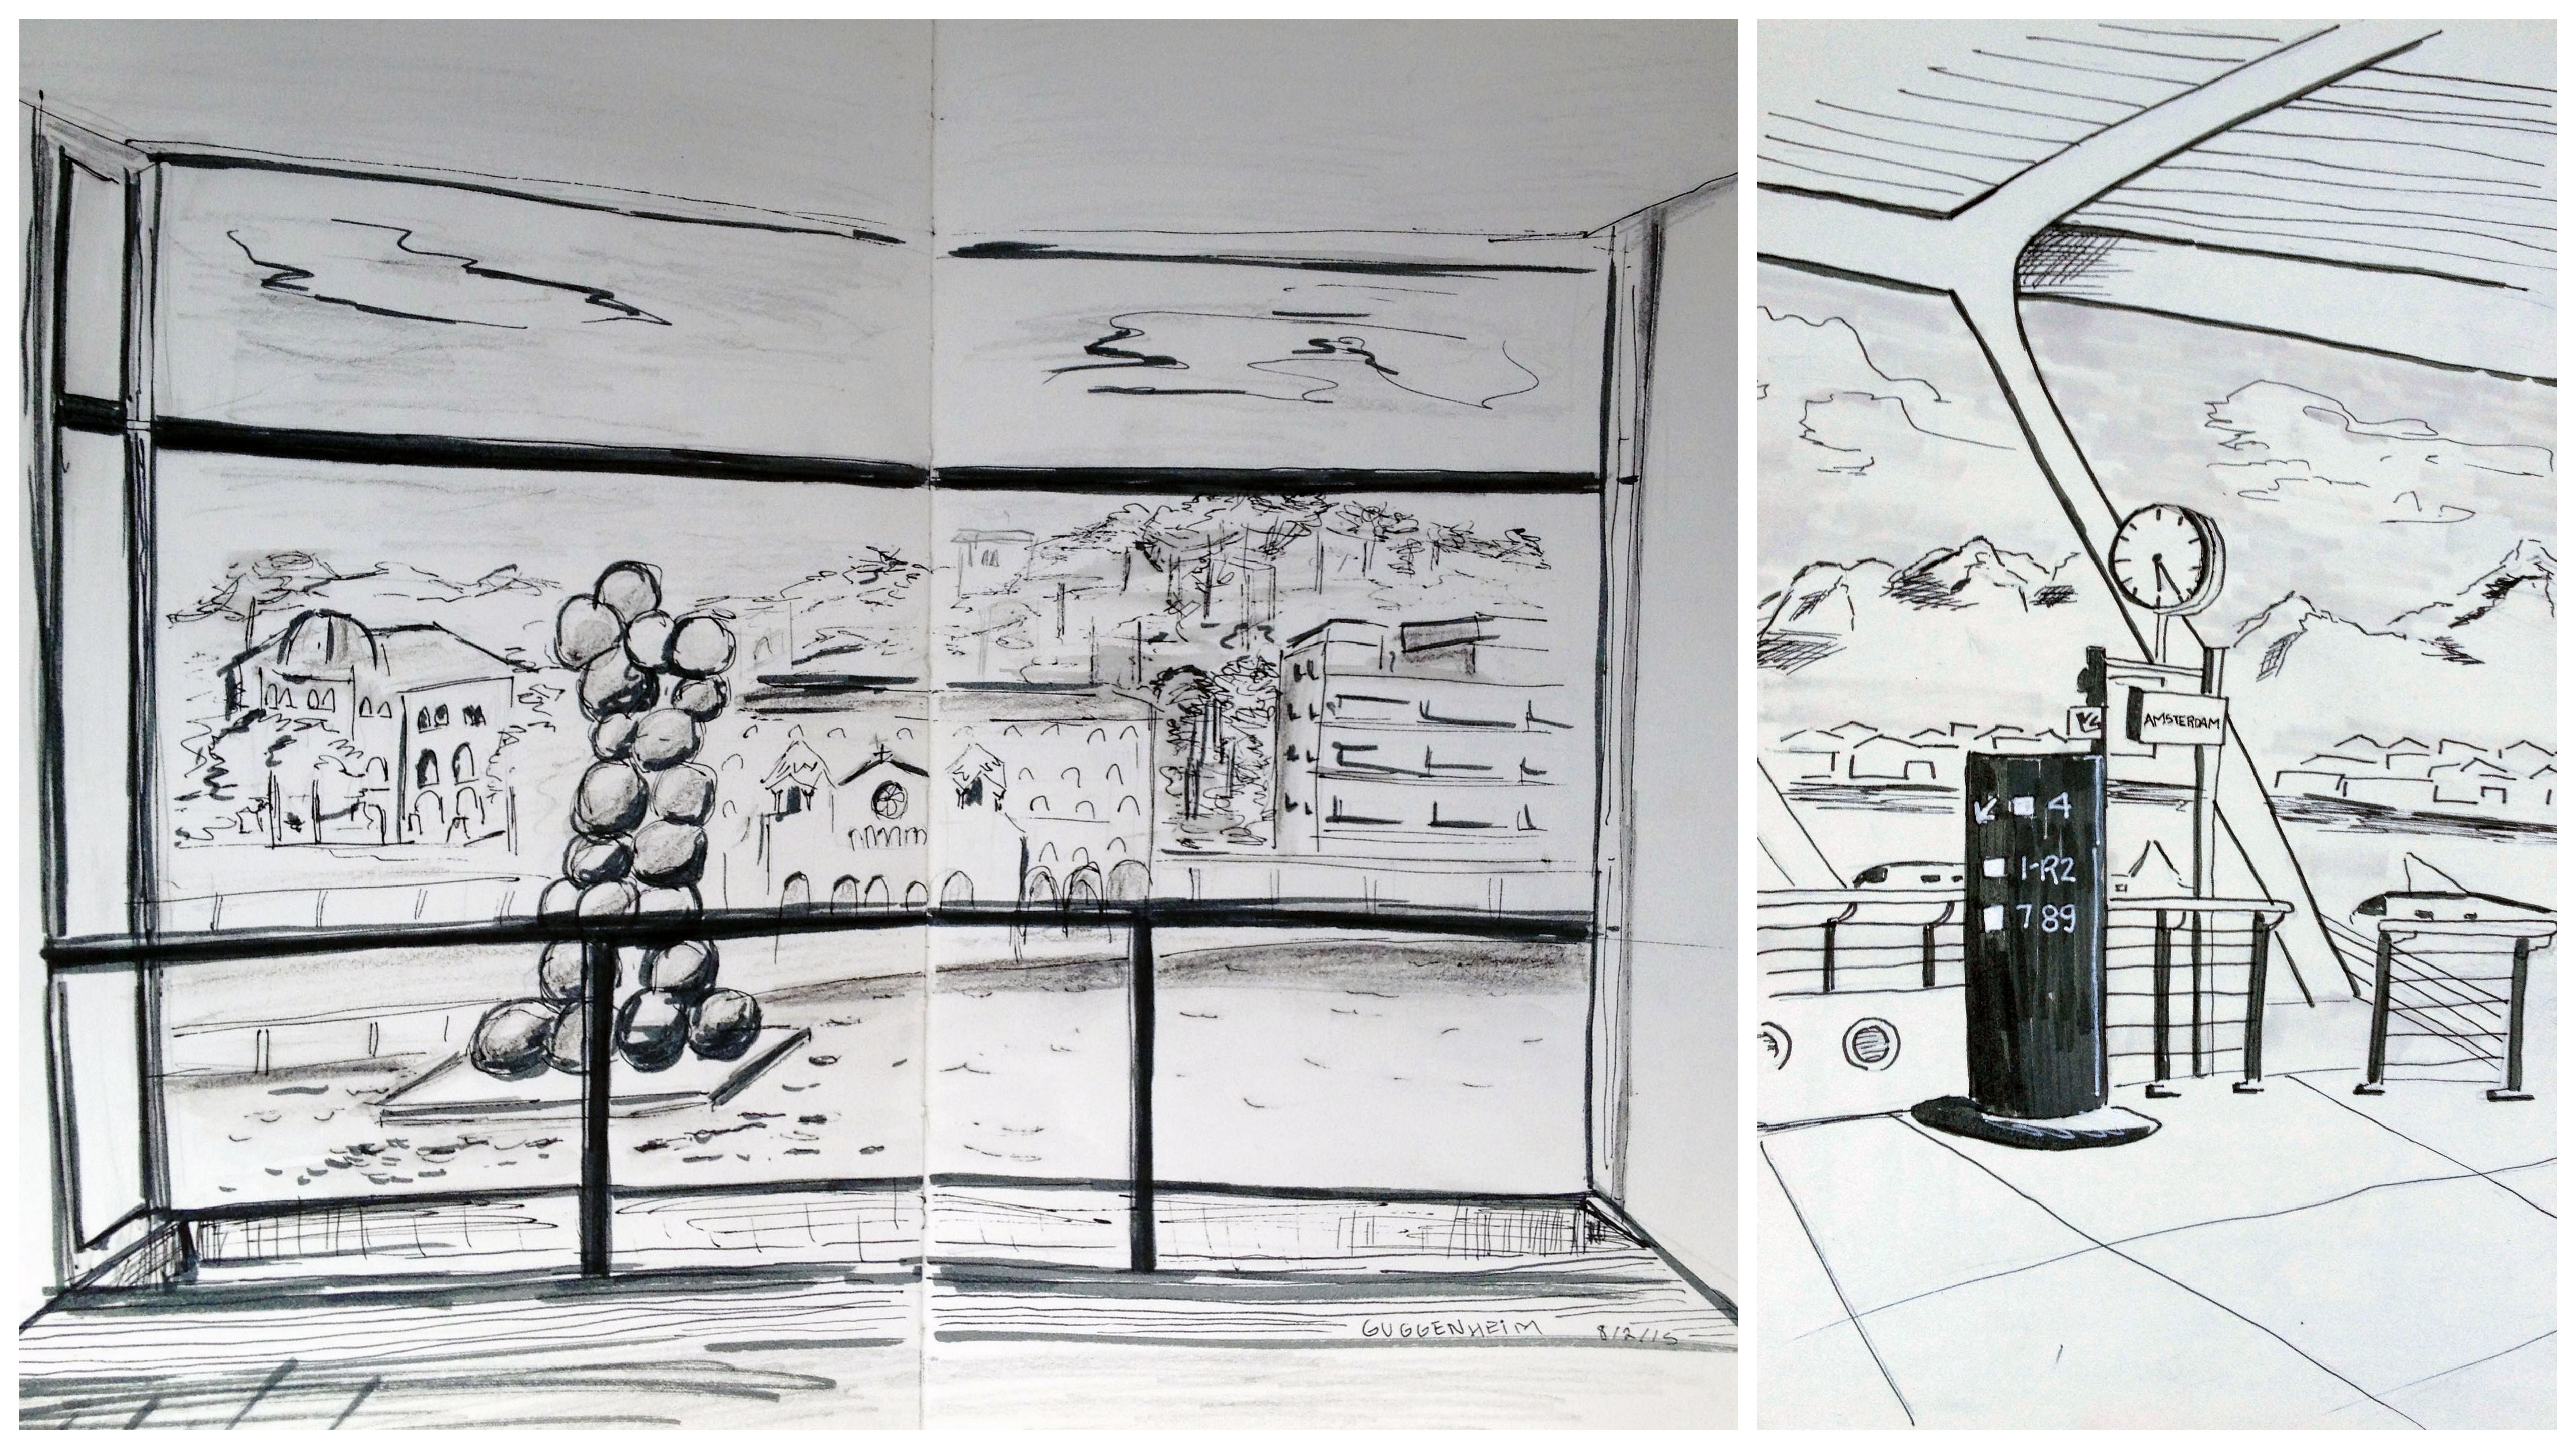 Architecture Drawing Practice study abroad in spain blog | barcelona spain | ciee - architecture